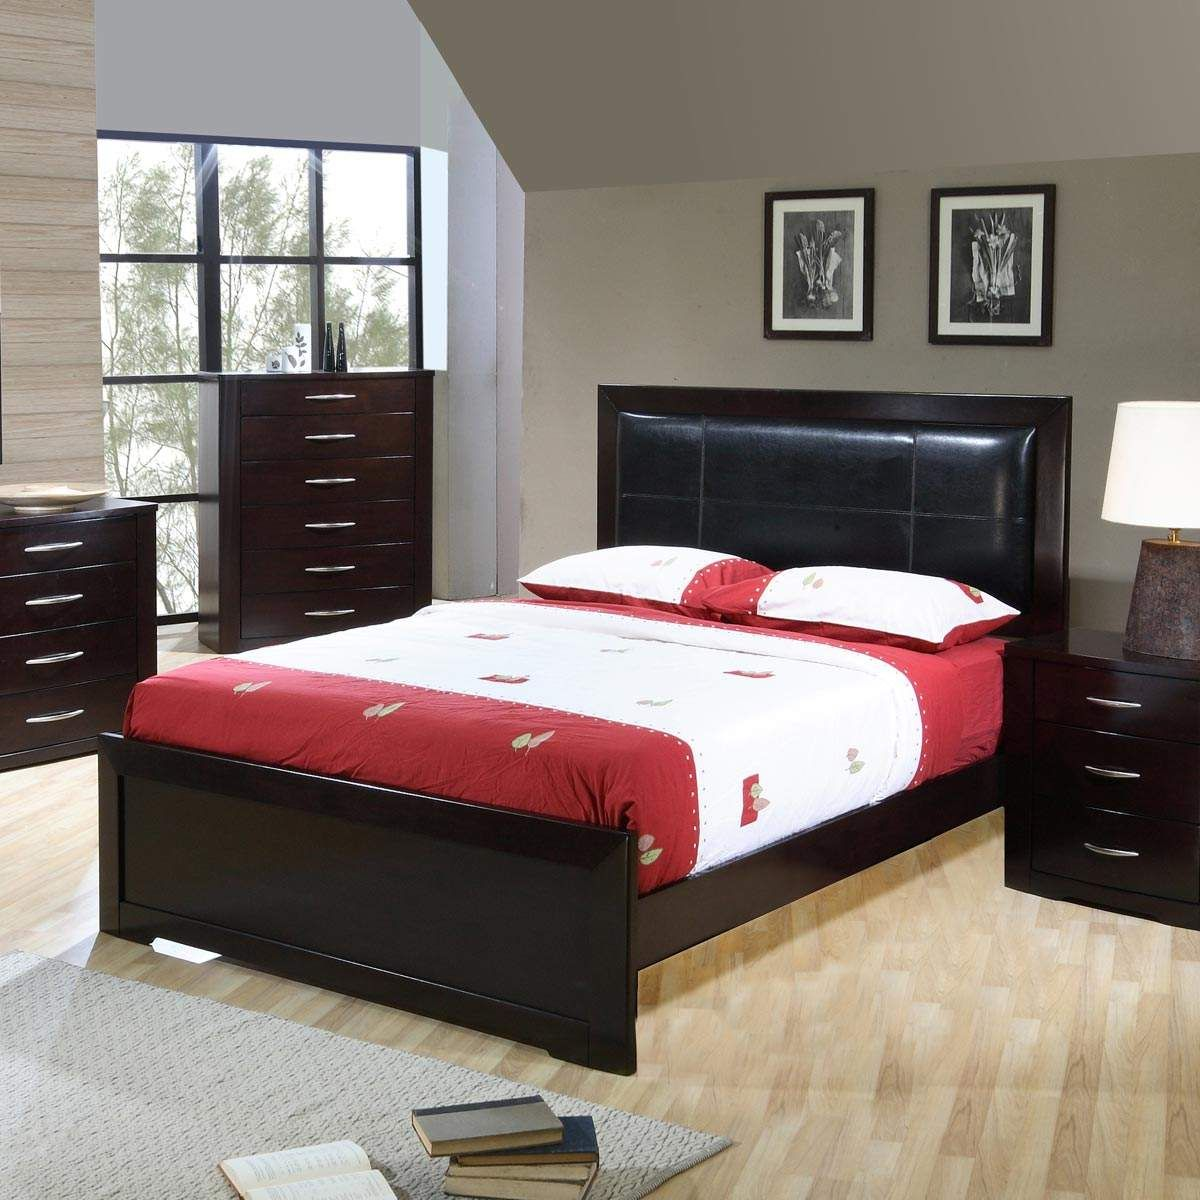 The Stylish Murano Panel Bedroom Set Features A Bi Cast Framed